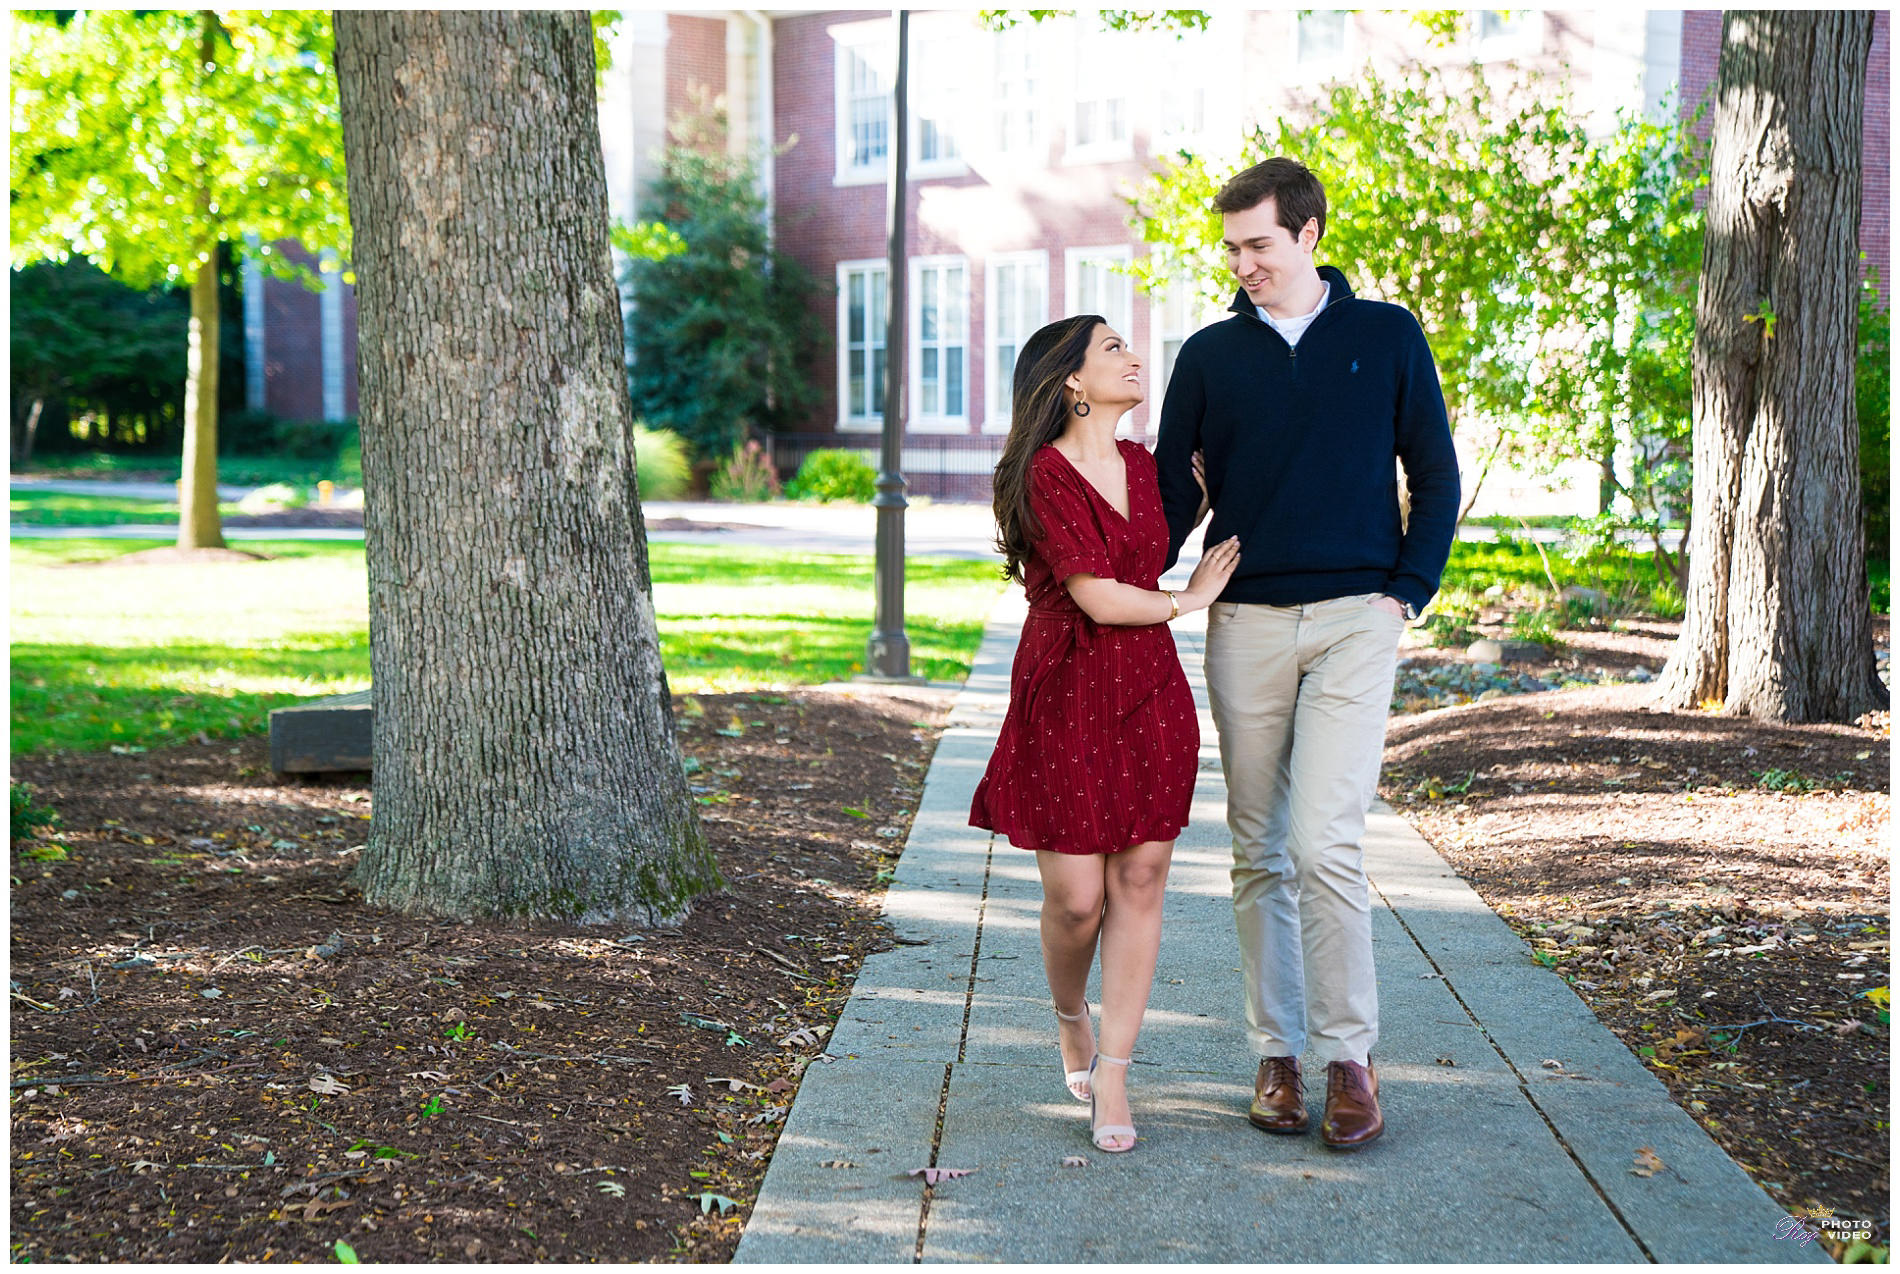 The-College-of-New-Jersey-Engagement-Shoot-Prerna-Kevin20.jpg